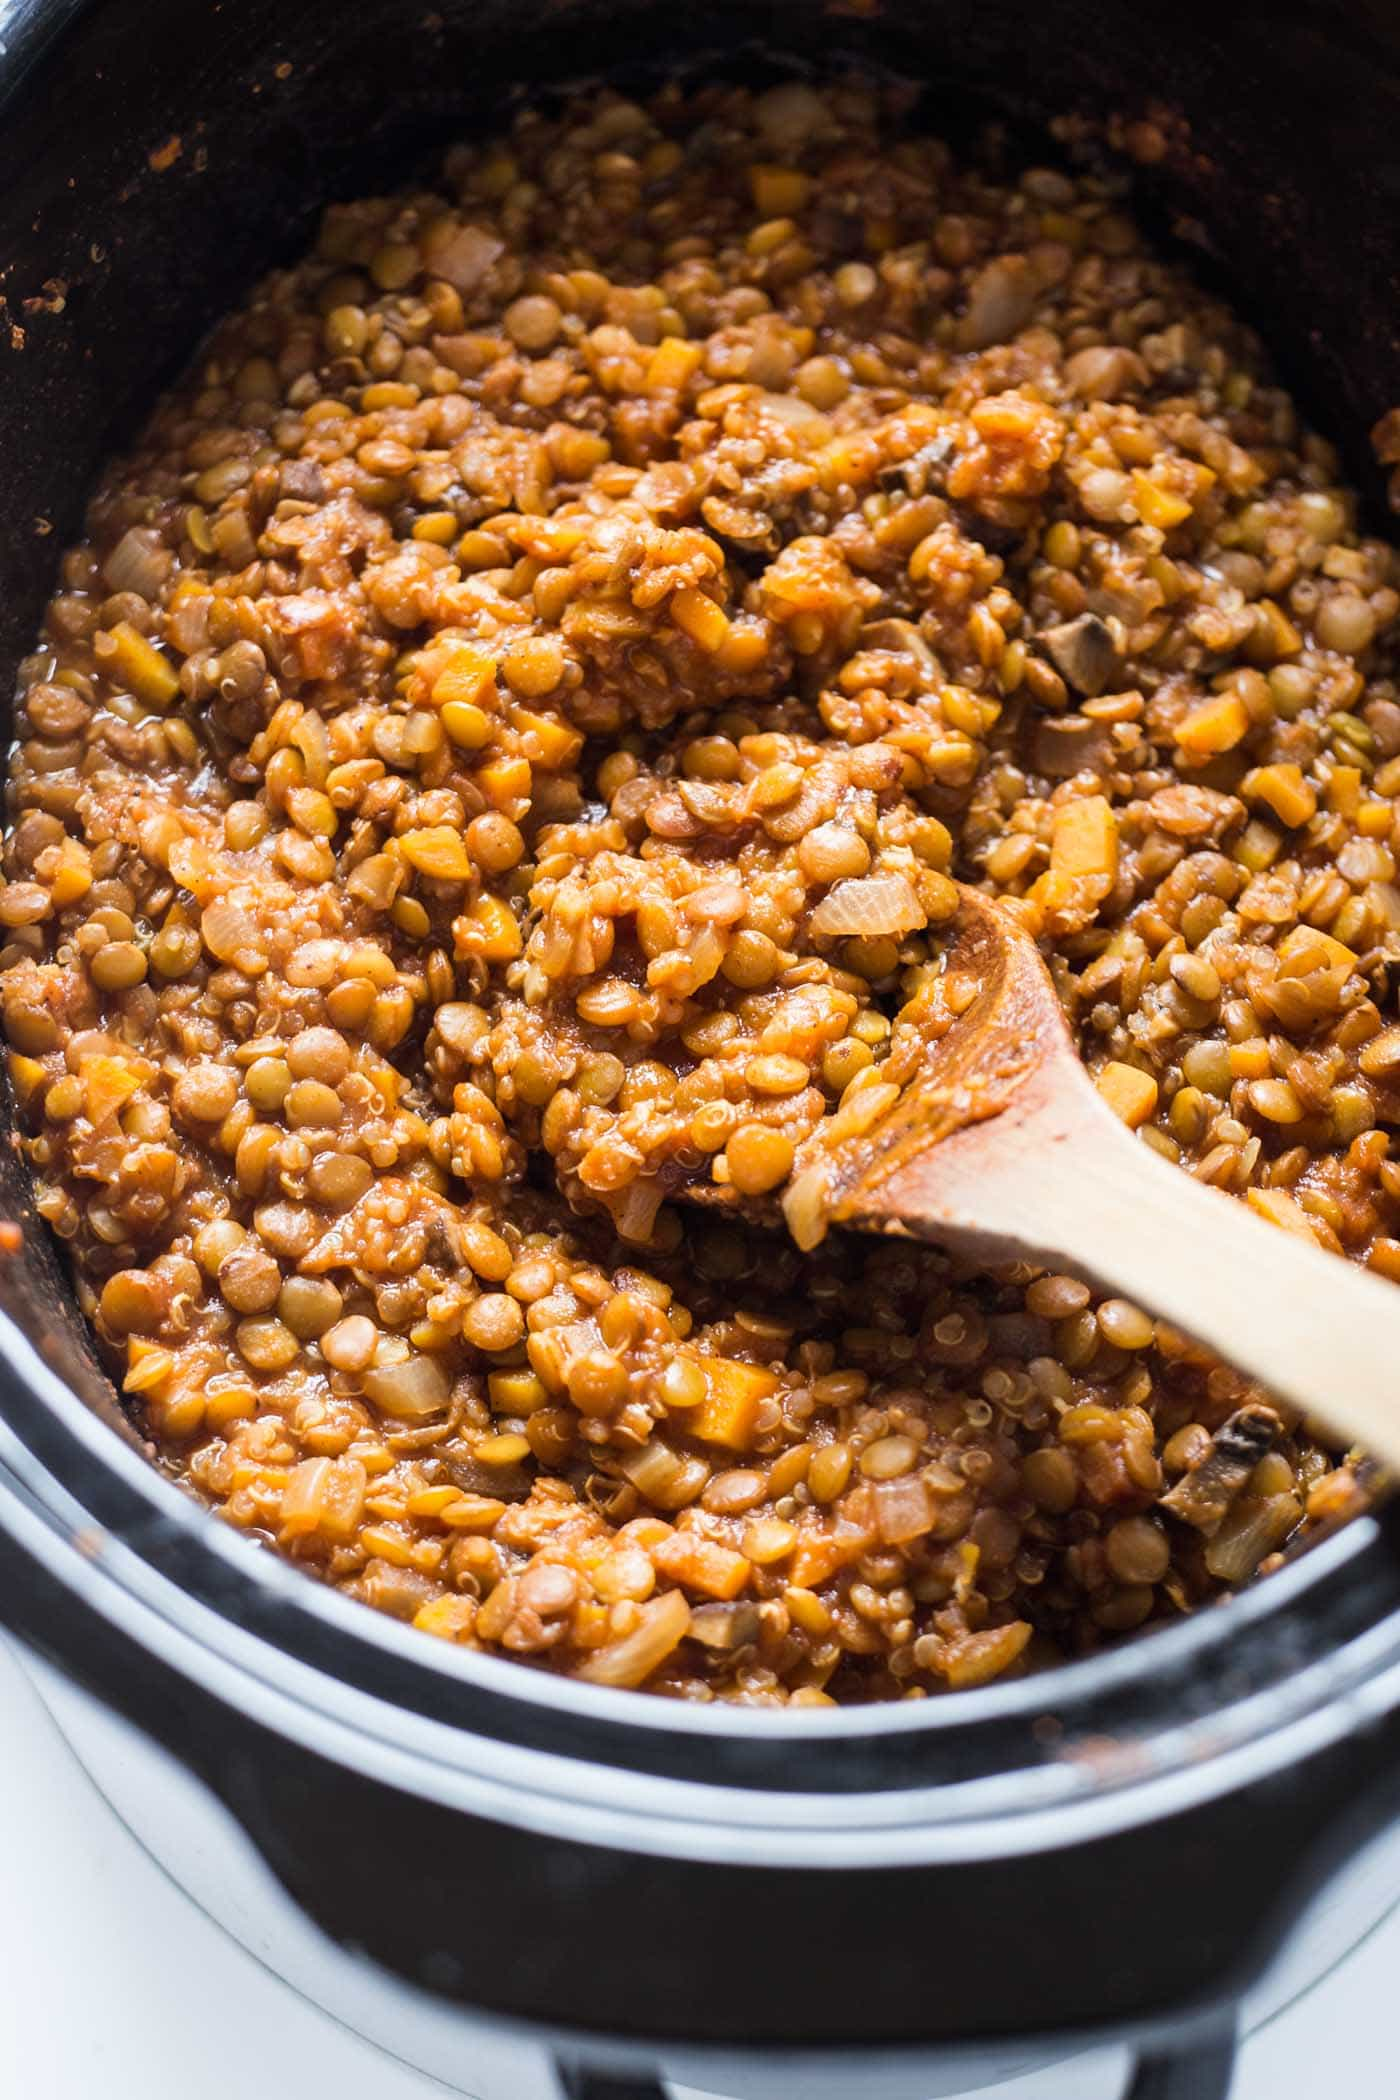 LENTIL SLOPPY JOES made in the slow cooker! So easy and the perfect vegan alternative to this all-American classic!